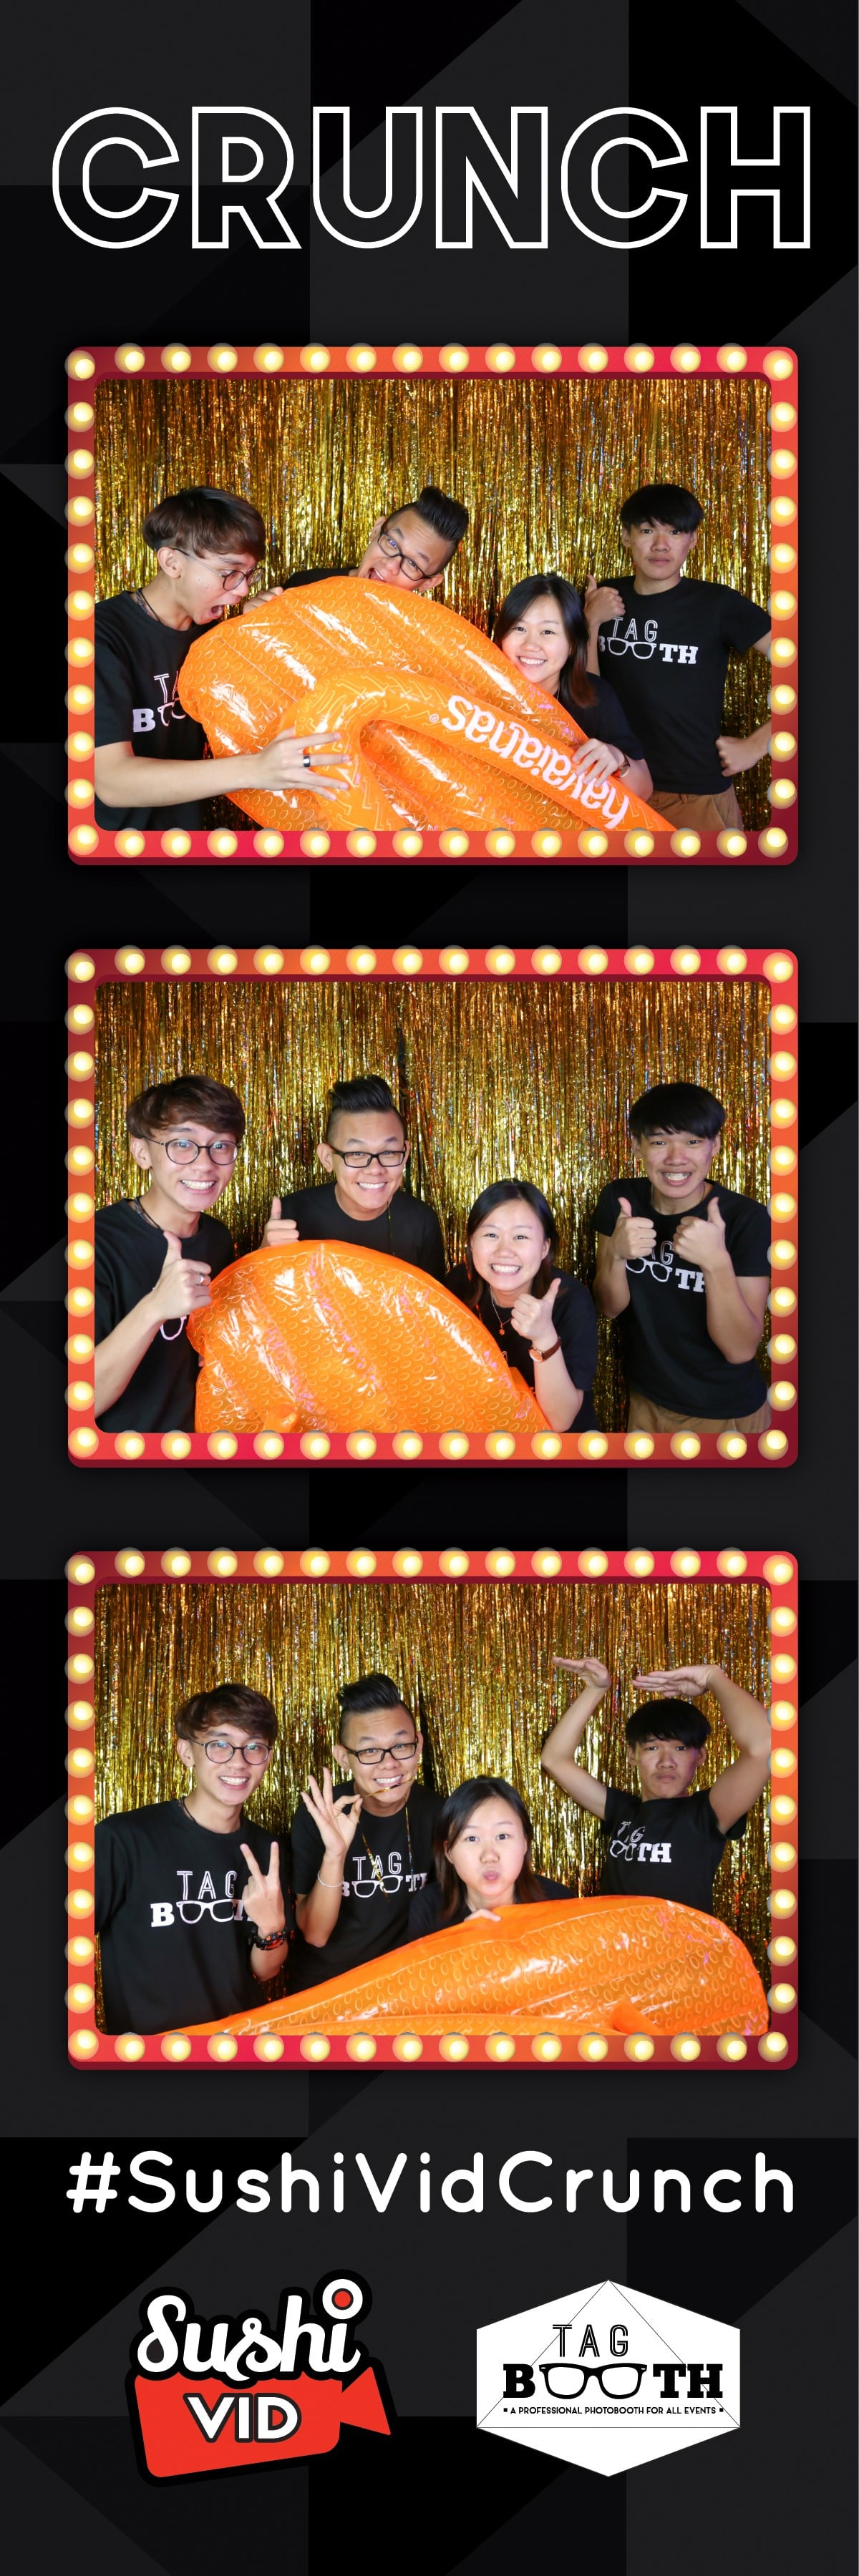 Sushivid+crunch+tagbooth1+15